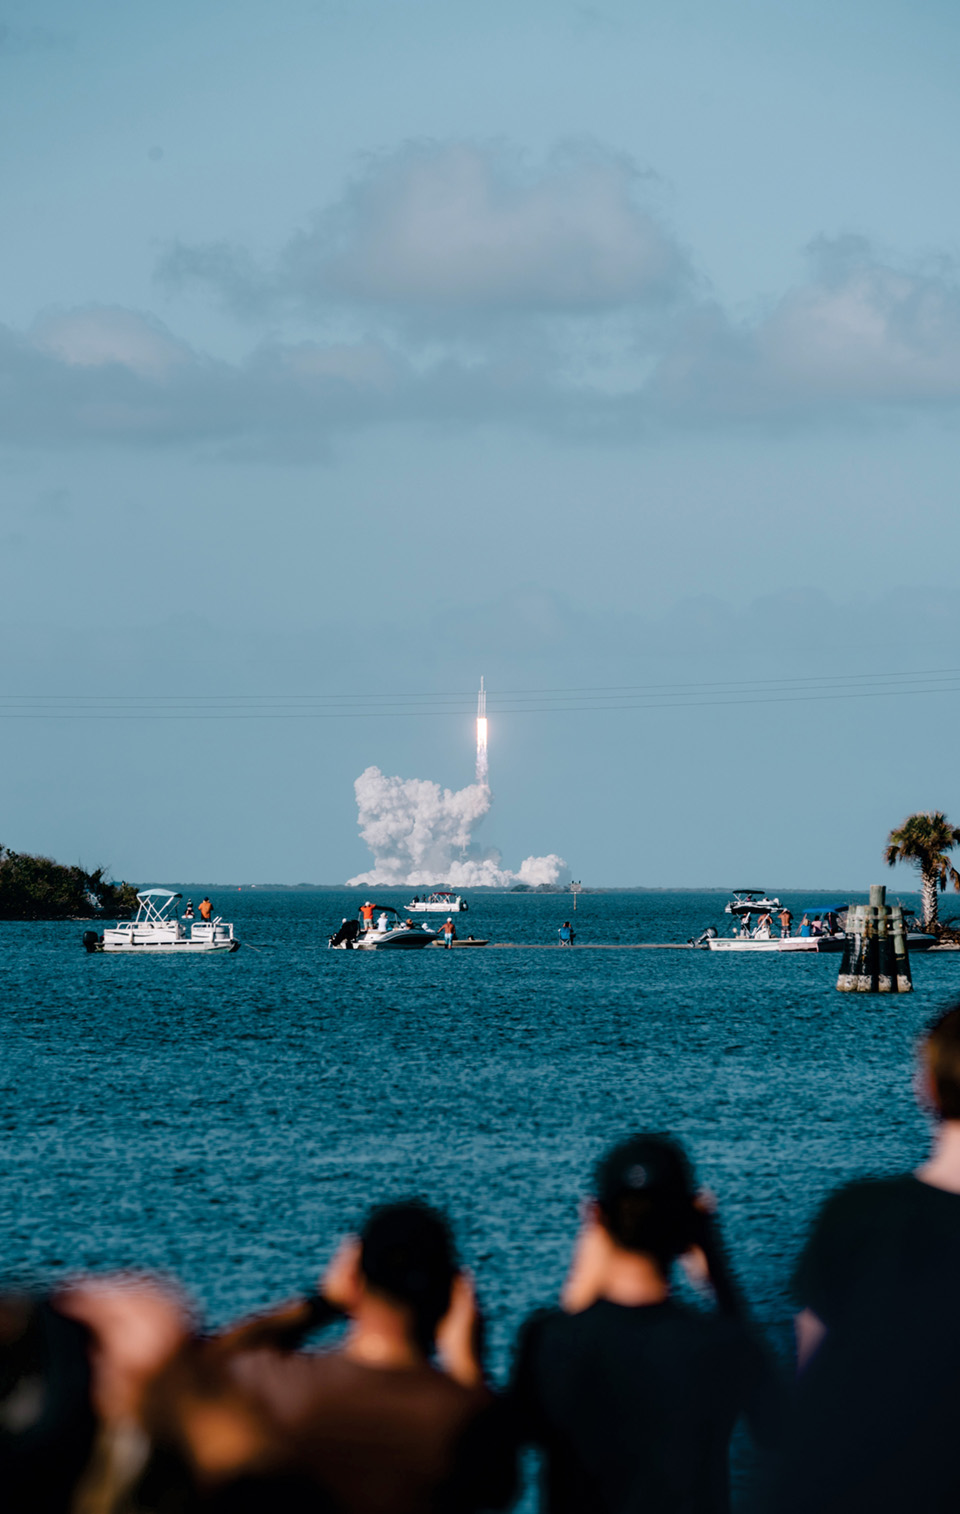 Revelers watch as a rocket embarks on a 200-mile journey up. People are watching in the foreground over the water which is dotted with boats also onlooking the rocket in the background.